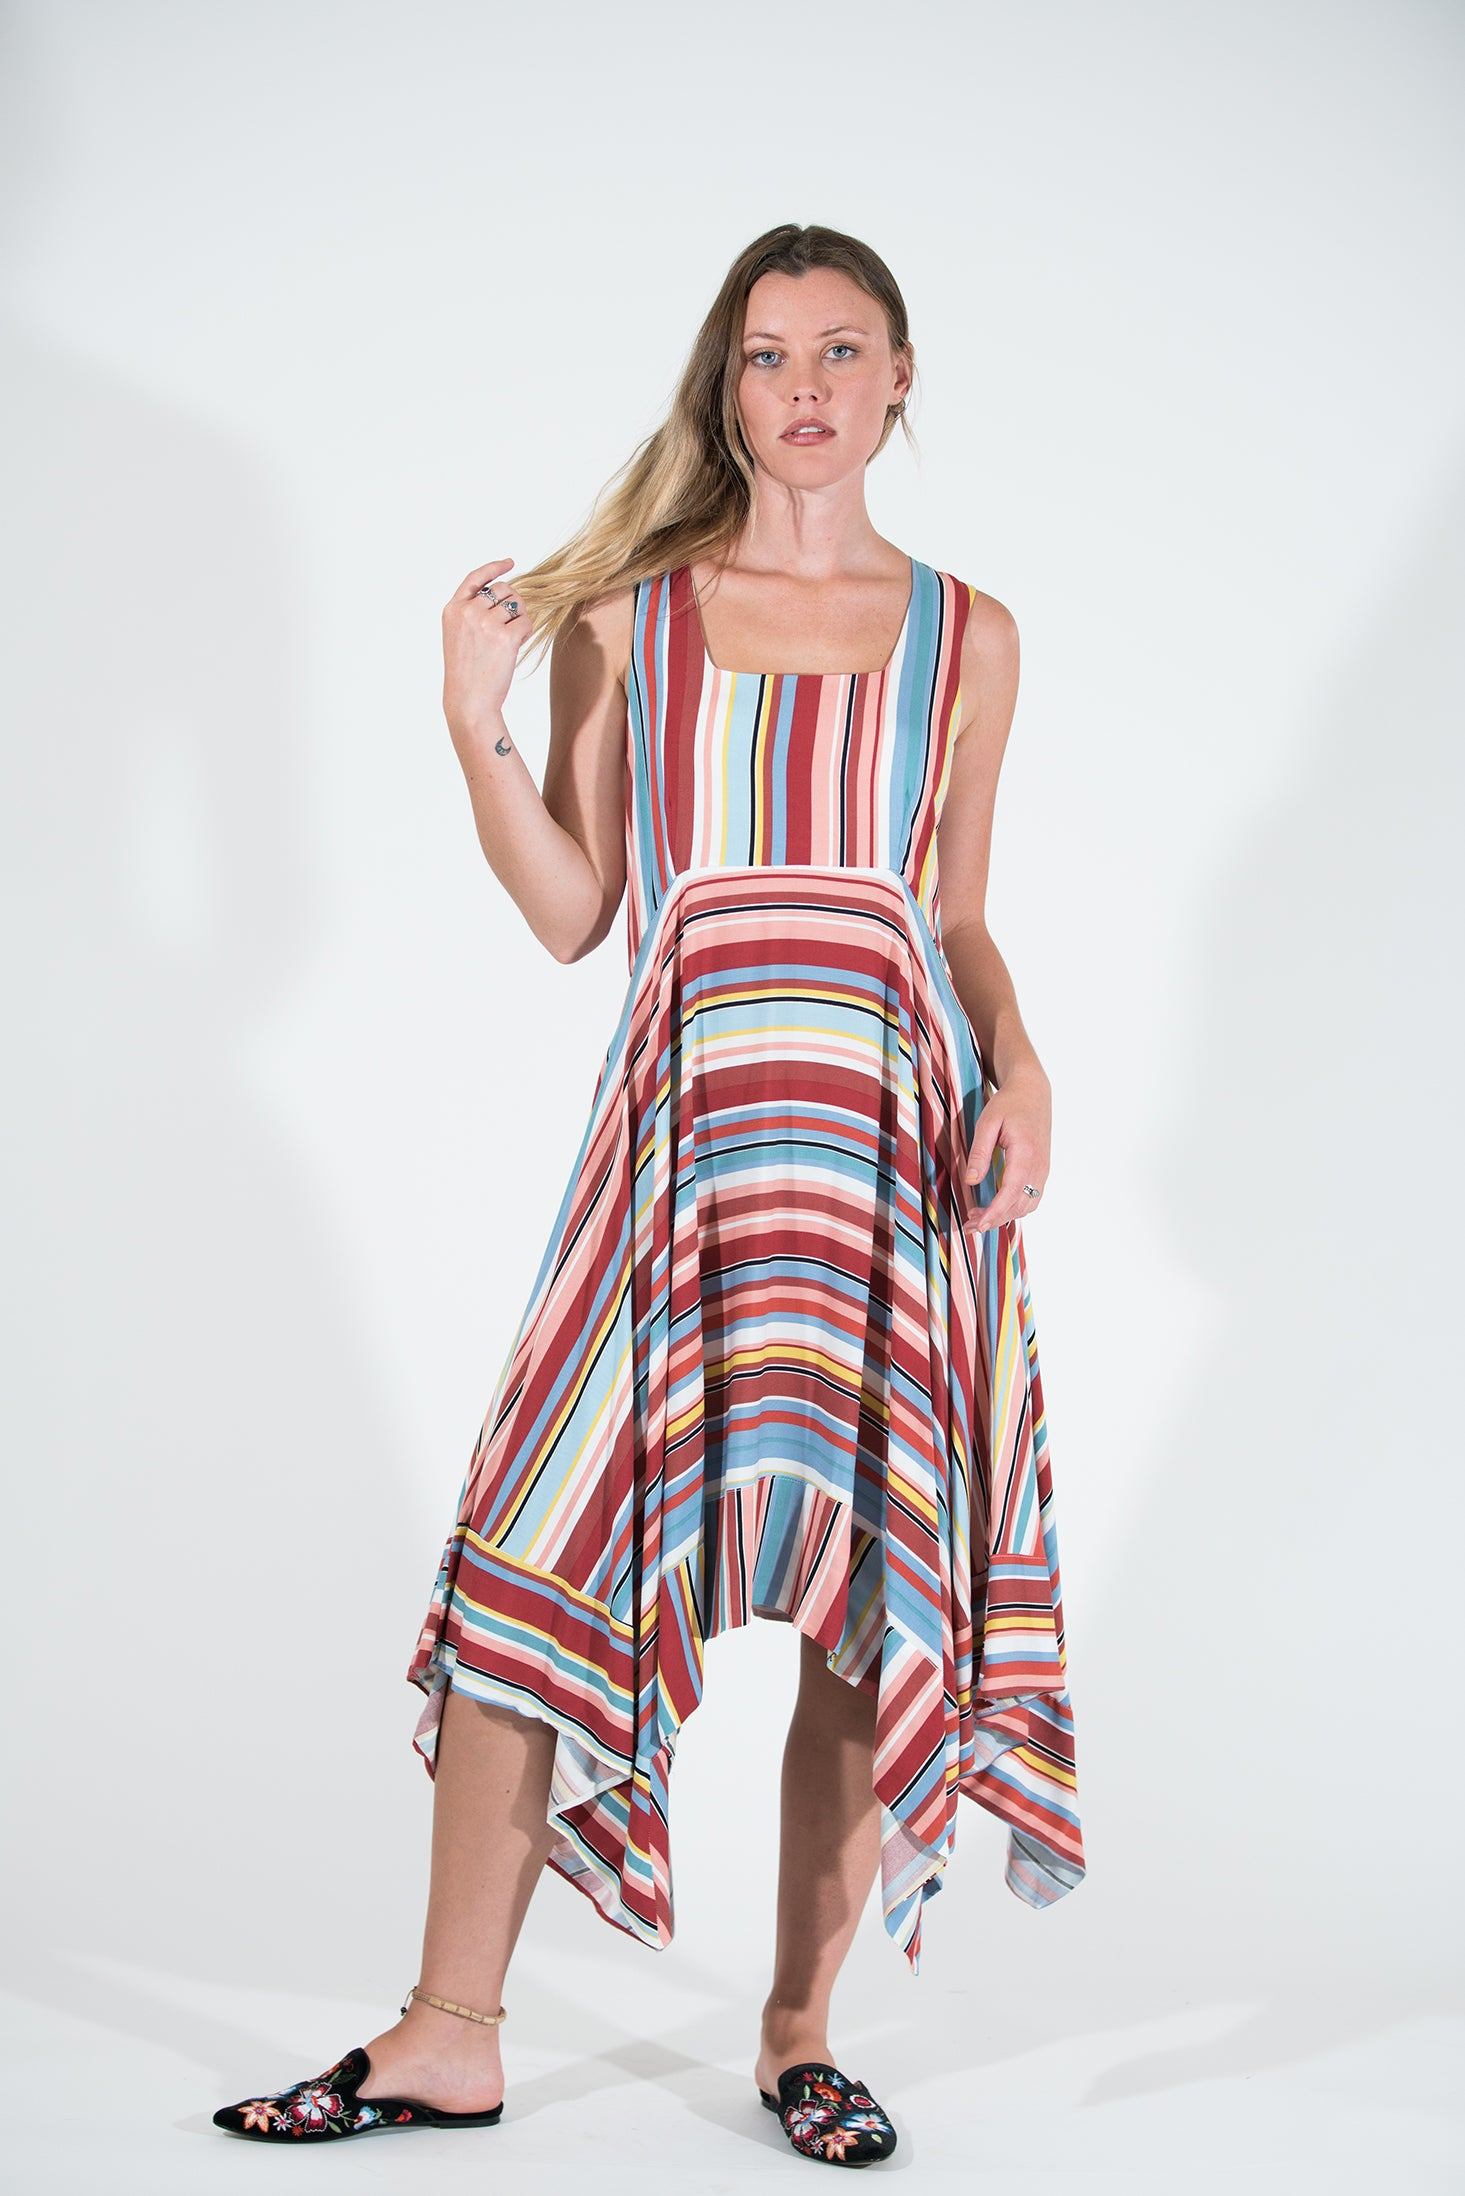 Cinnamon Dress - Spring Stripe